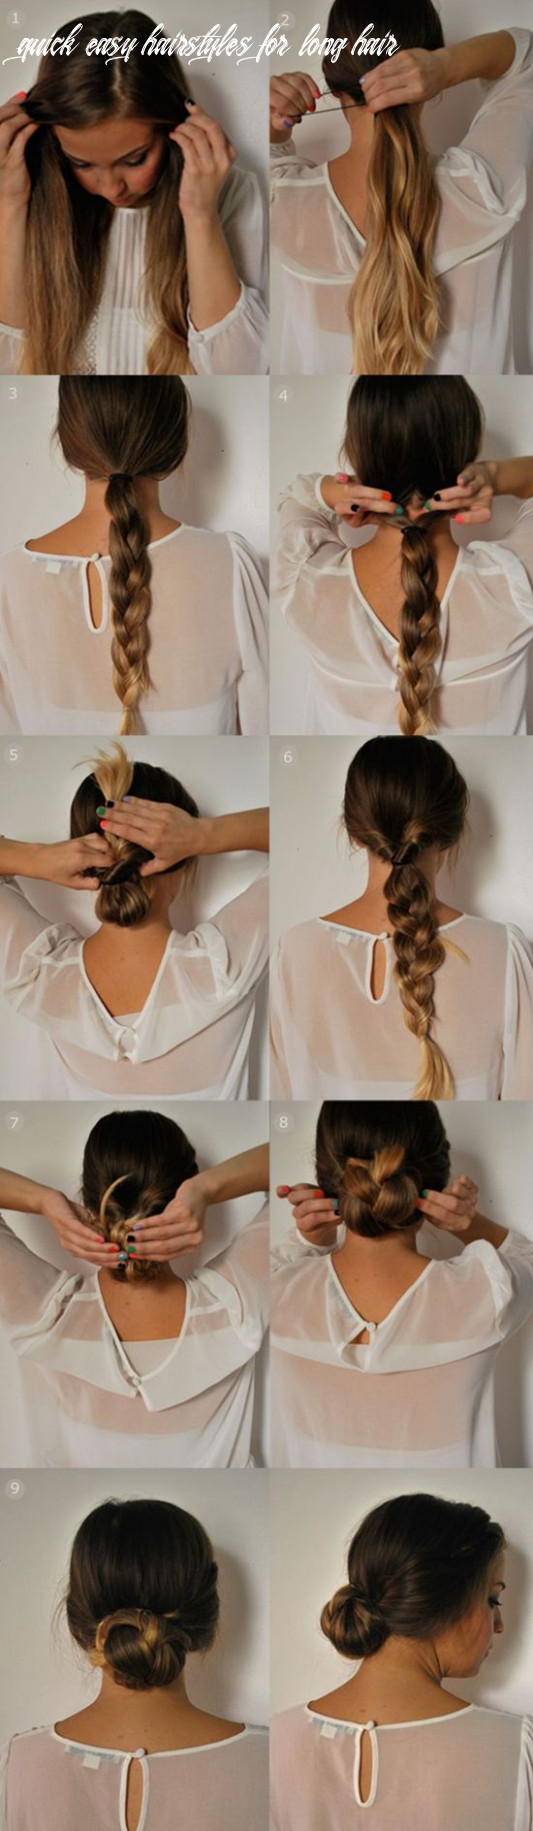 12 easy 12 minutes hairstyles for women hairstyles weekly quick easy hairstyles for long hair